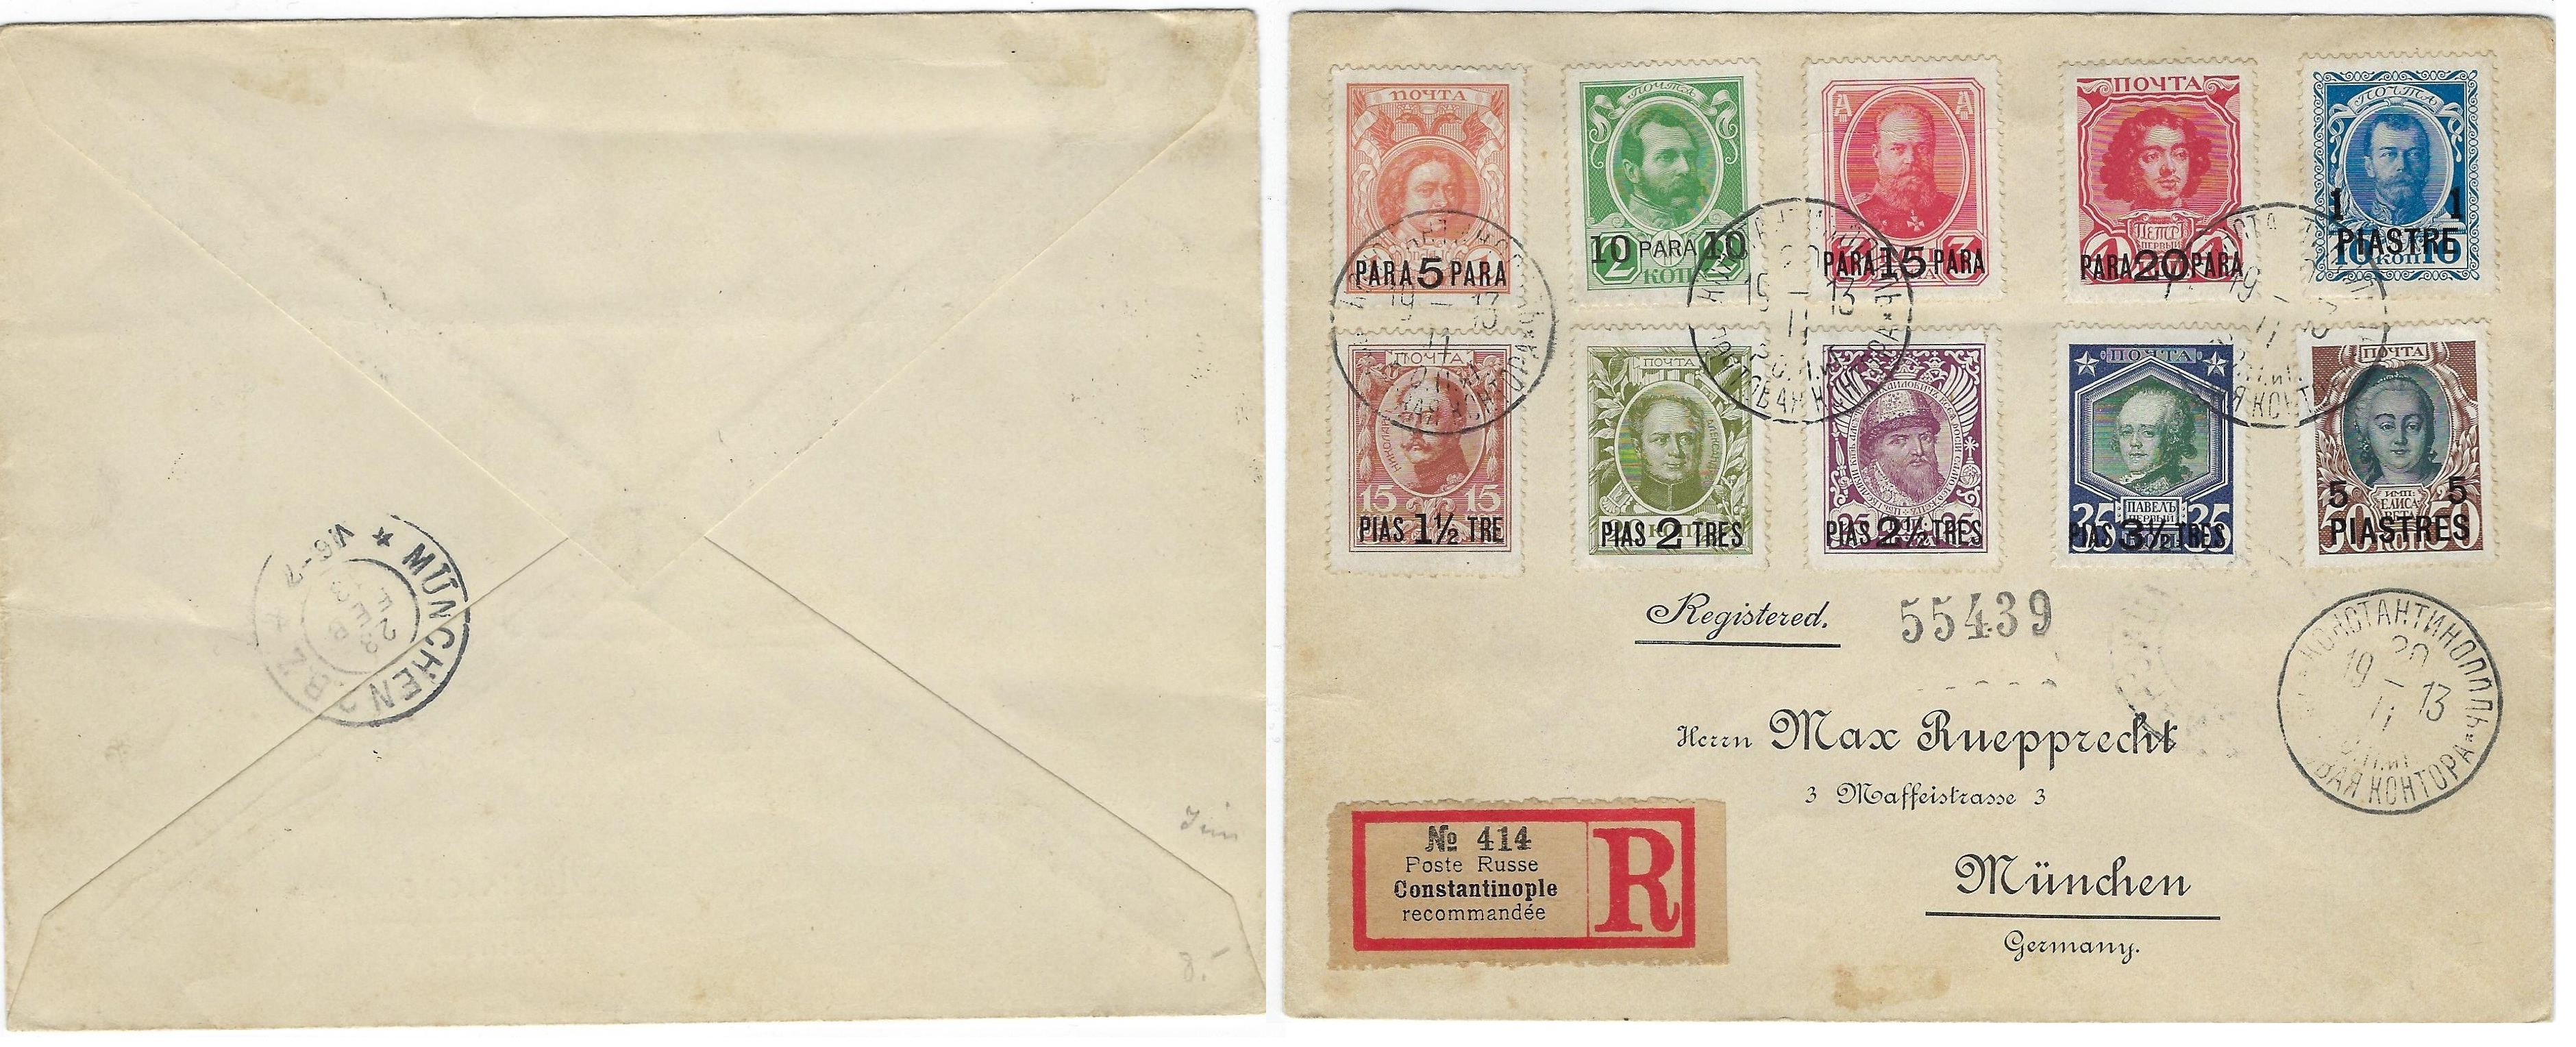 Russia Postal History - Offices in Turkey. Constantinopol Scott 10a